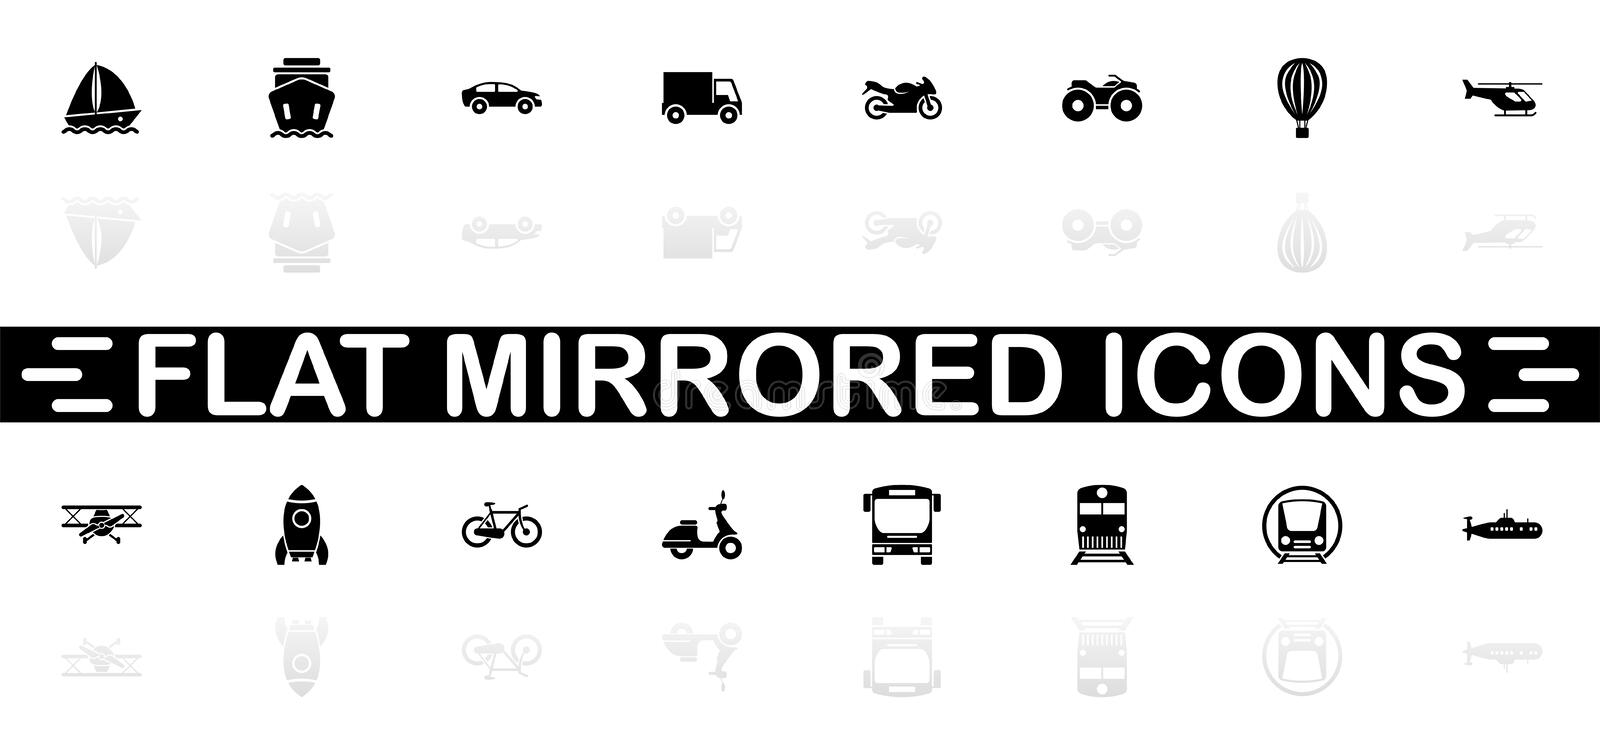 Transport - Flat Vector Icons. Transport icons - Black symbol on white background. Simple illustration. Flat Vector Icon. Mirror Reflection Shadow. Can be used vector illustration